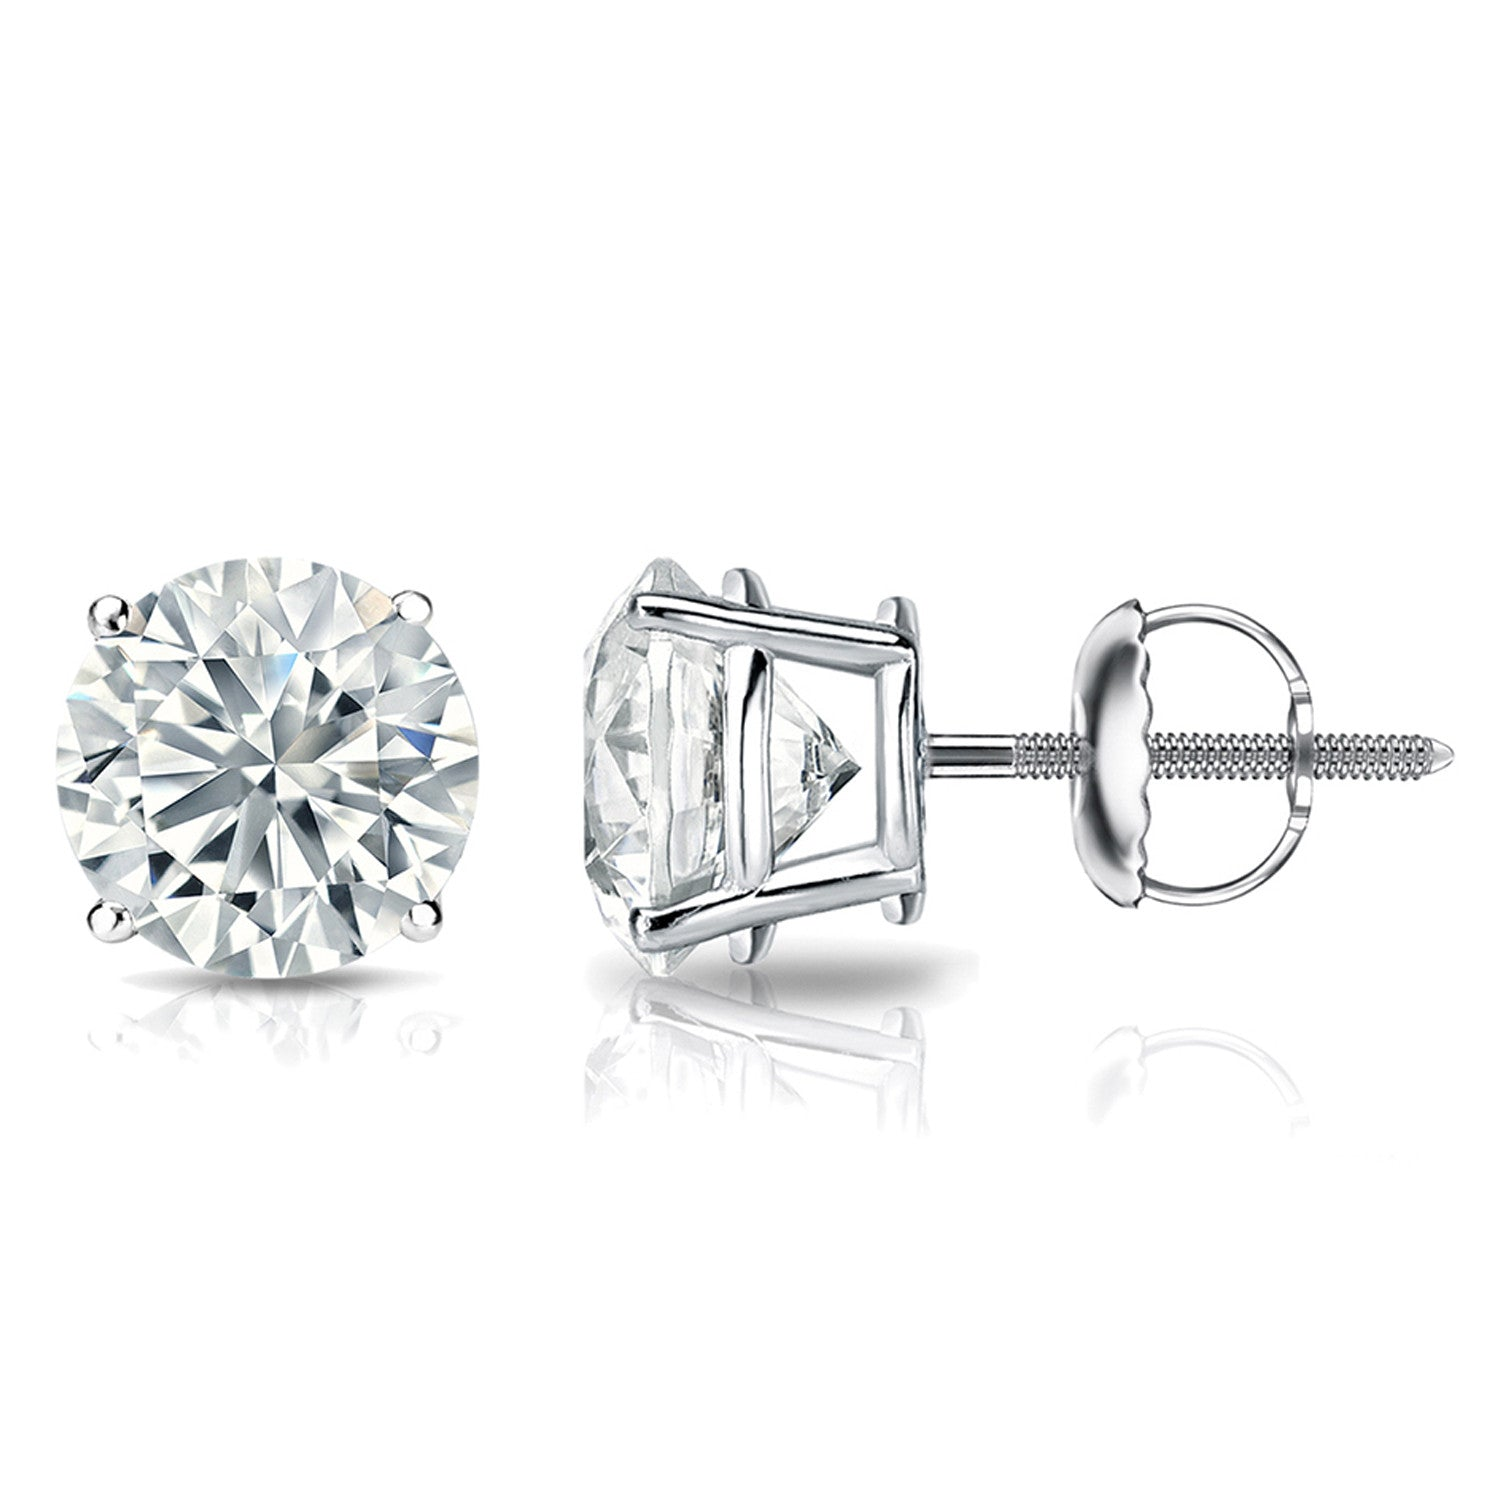 1 ¼ Carat Round 14K White Gold 4 Prong Basket Set Diamond Solitaire Stud Earrings (Classic Quality)